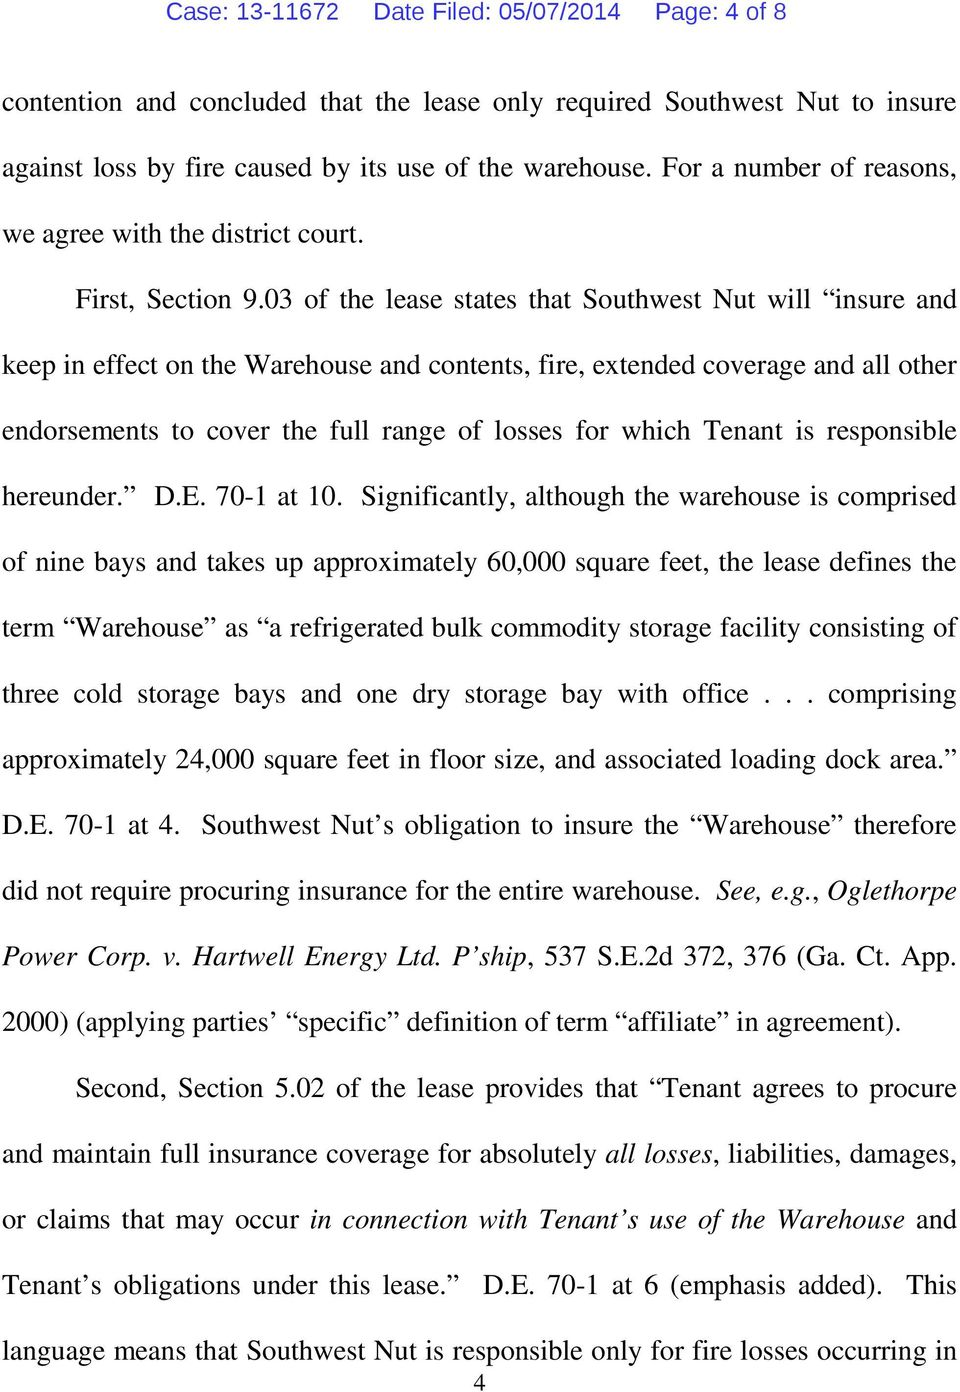 03 of the lease states that Southwest Nut will insure and keep in effect on the Warehouse and contents, fire, extended coverage and all other endorsements to cover the full range of losses for which